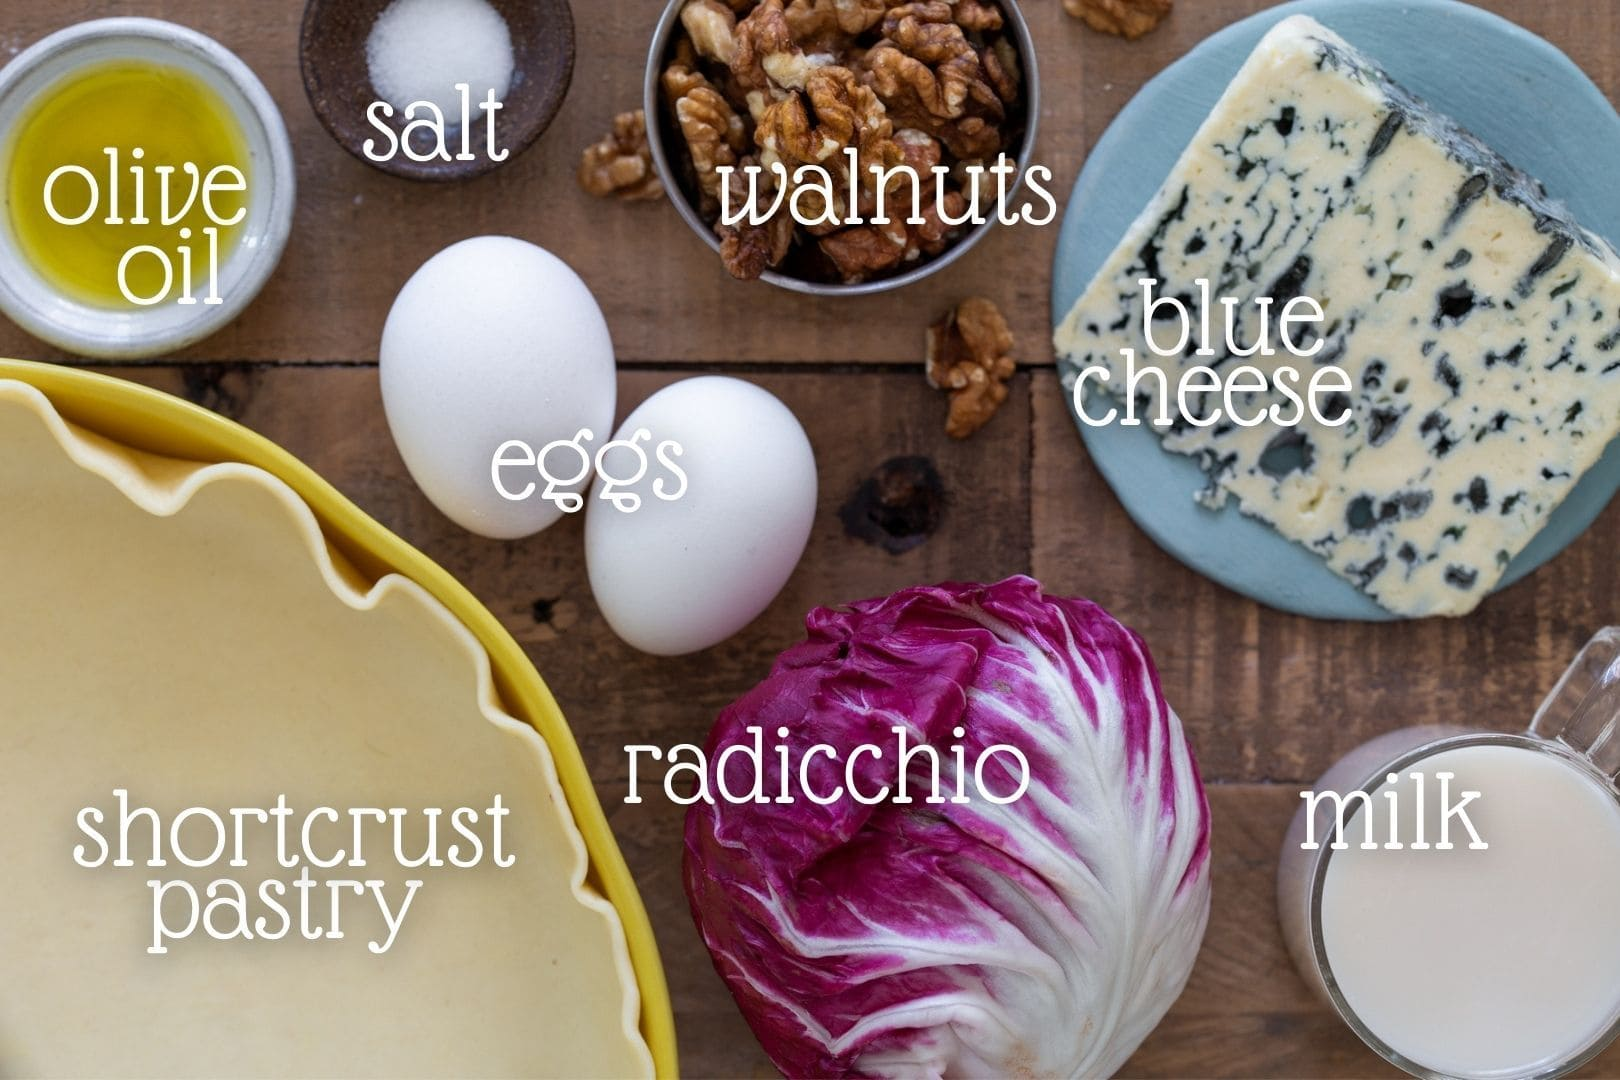 The ingredients needed for the recipe.